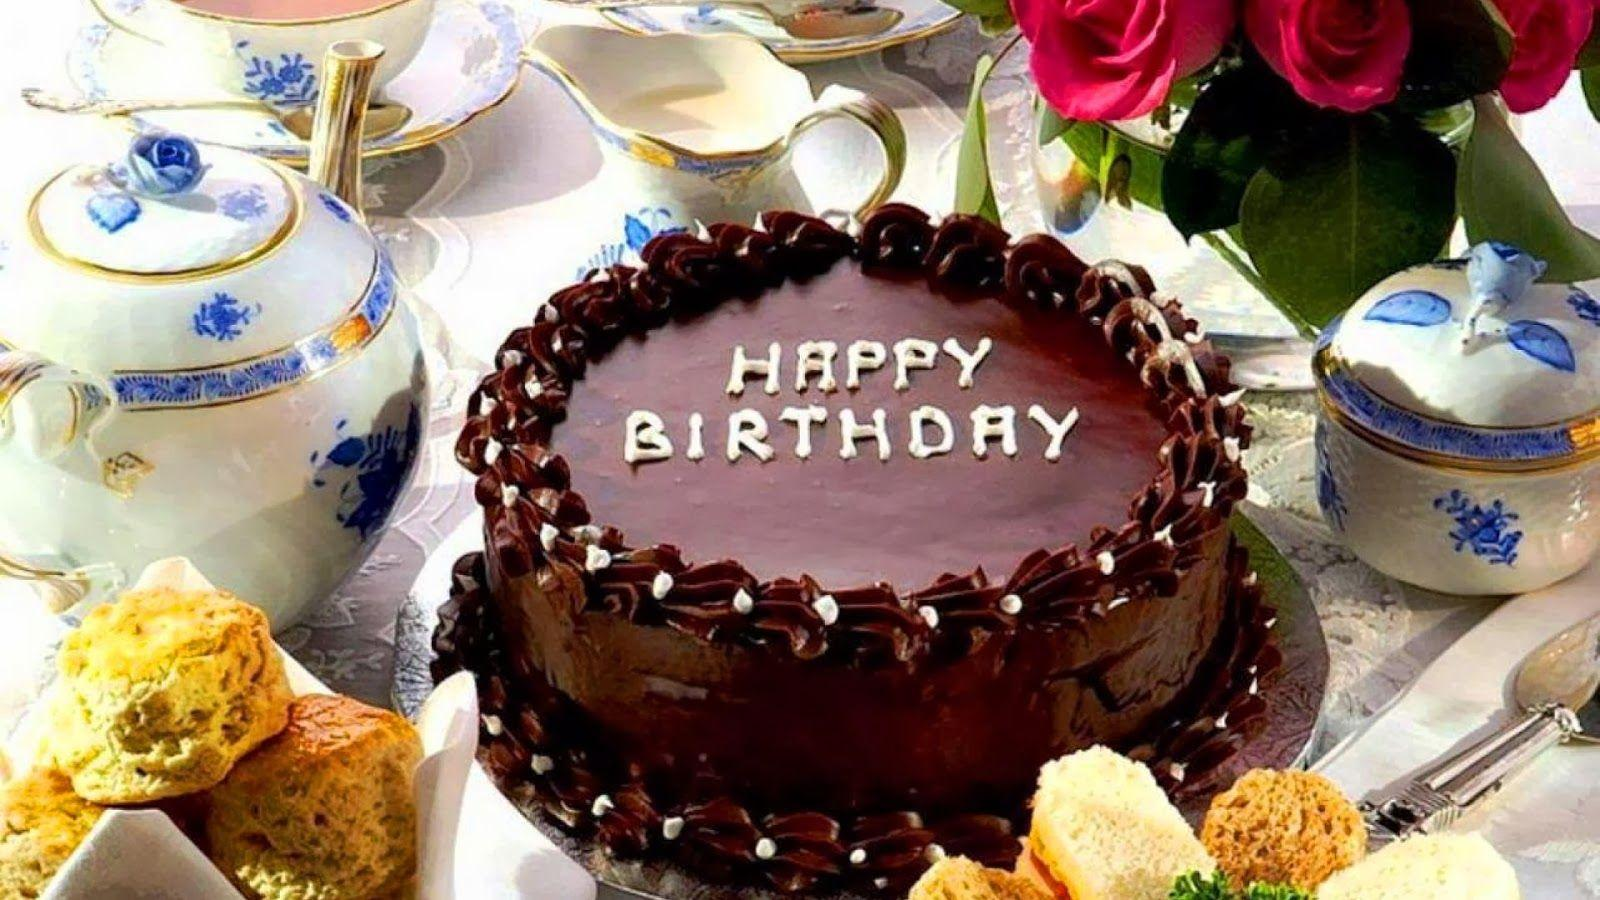 Chocolate Cake Images Free Download : Wallpapers Happy Birthday Cake - Wallpaper Cave